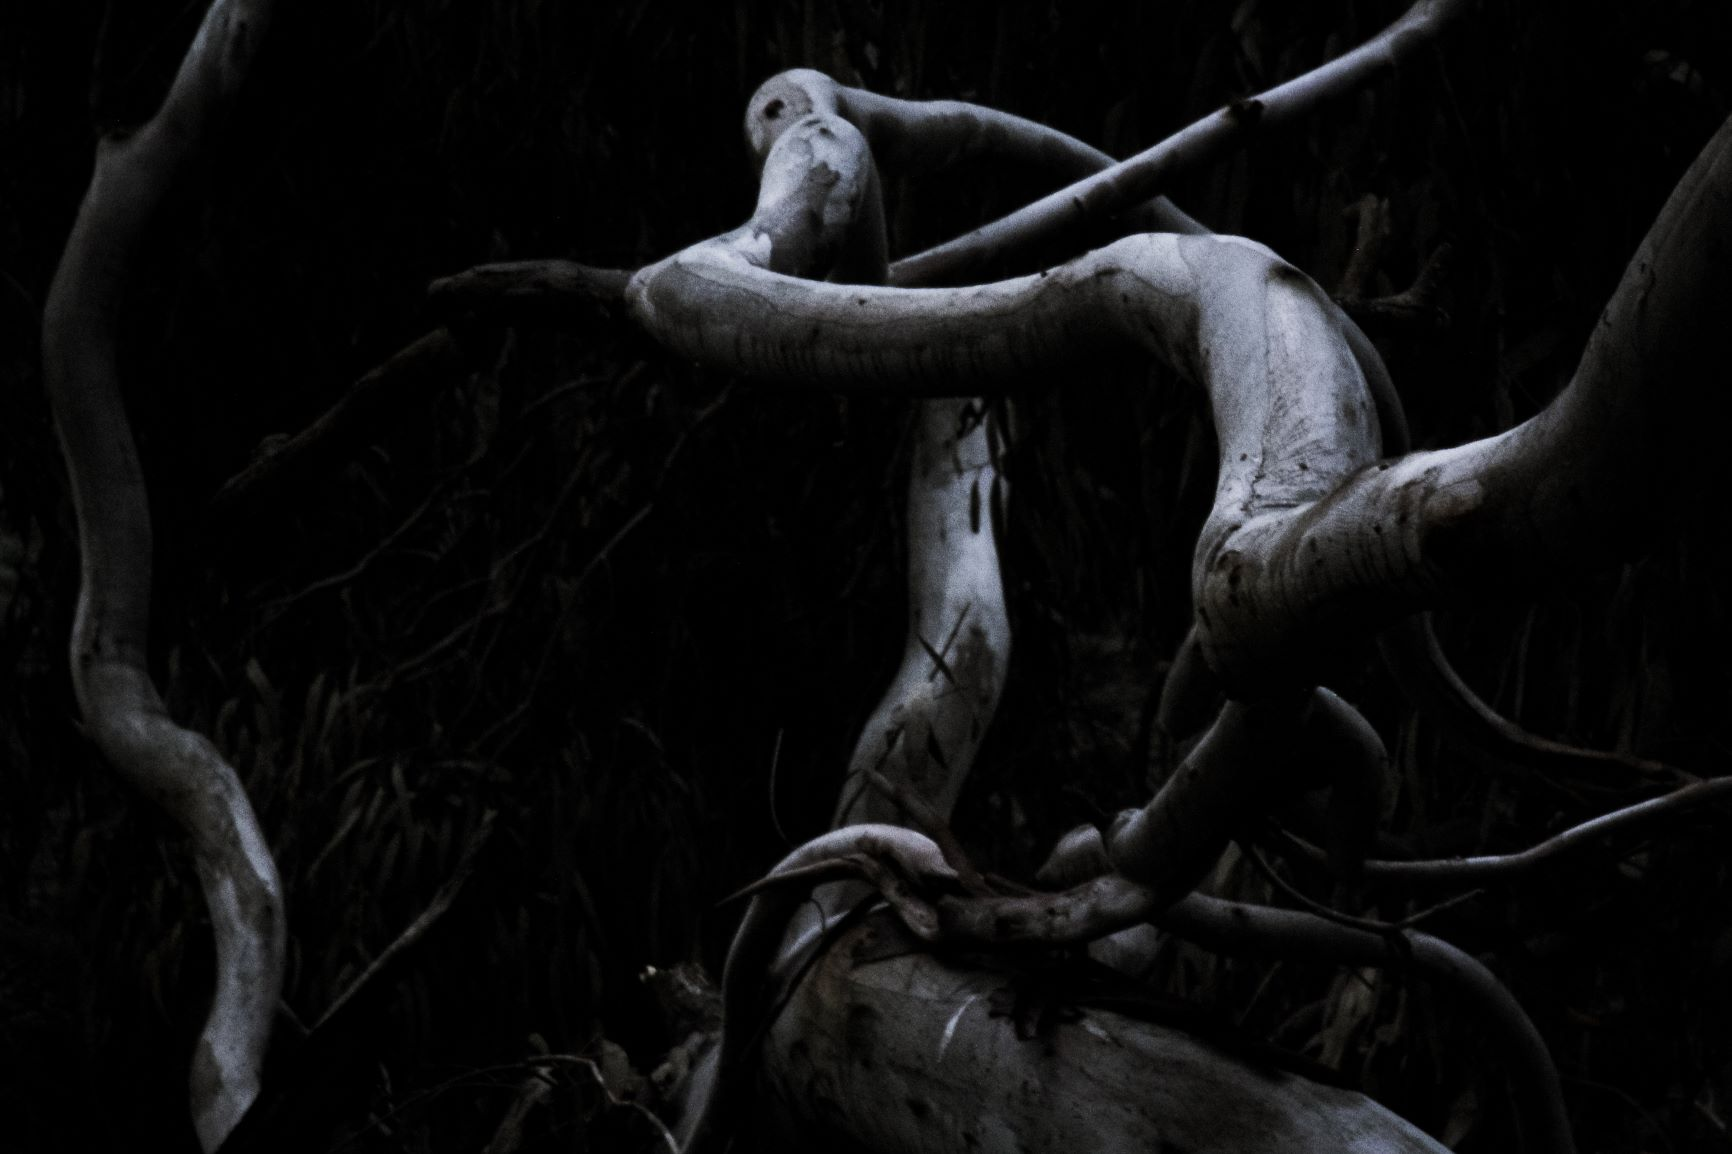 Black and white photograph showing fallen limbs from a tree in a form which can appear to take on other organic forms.